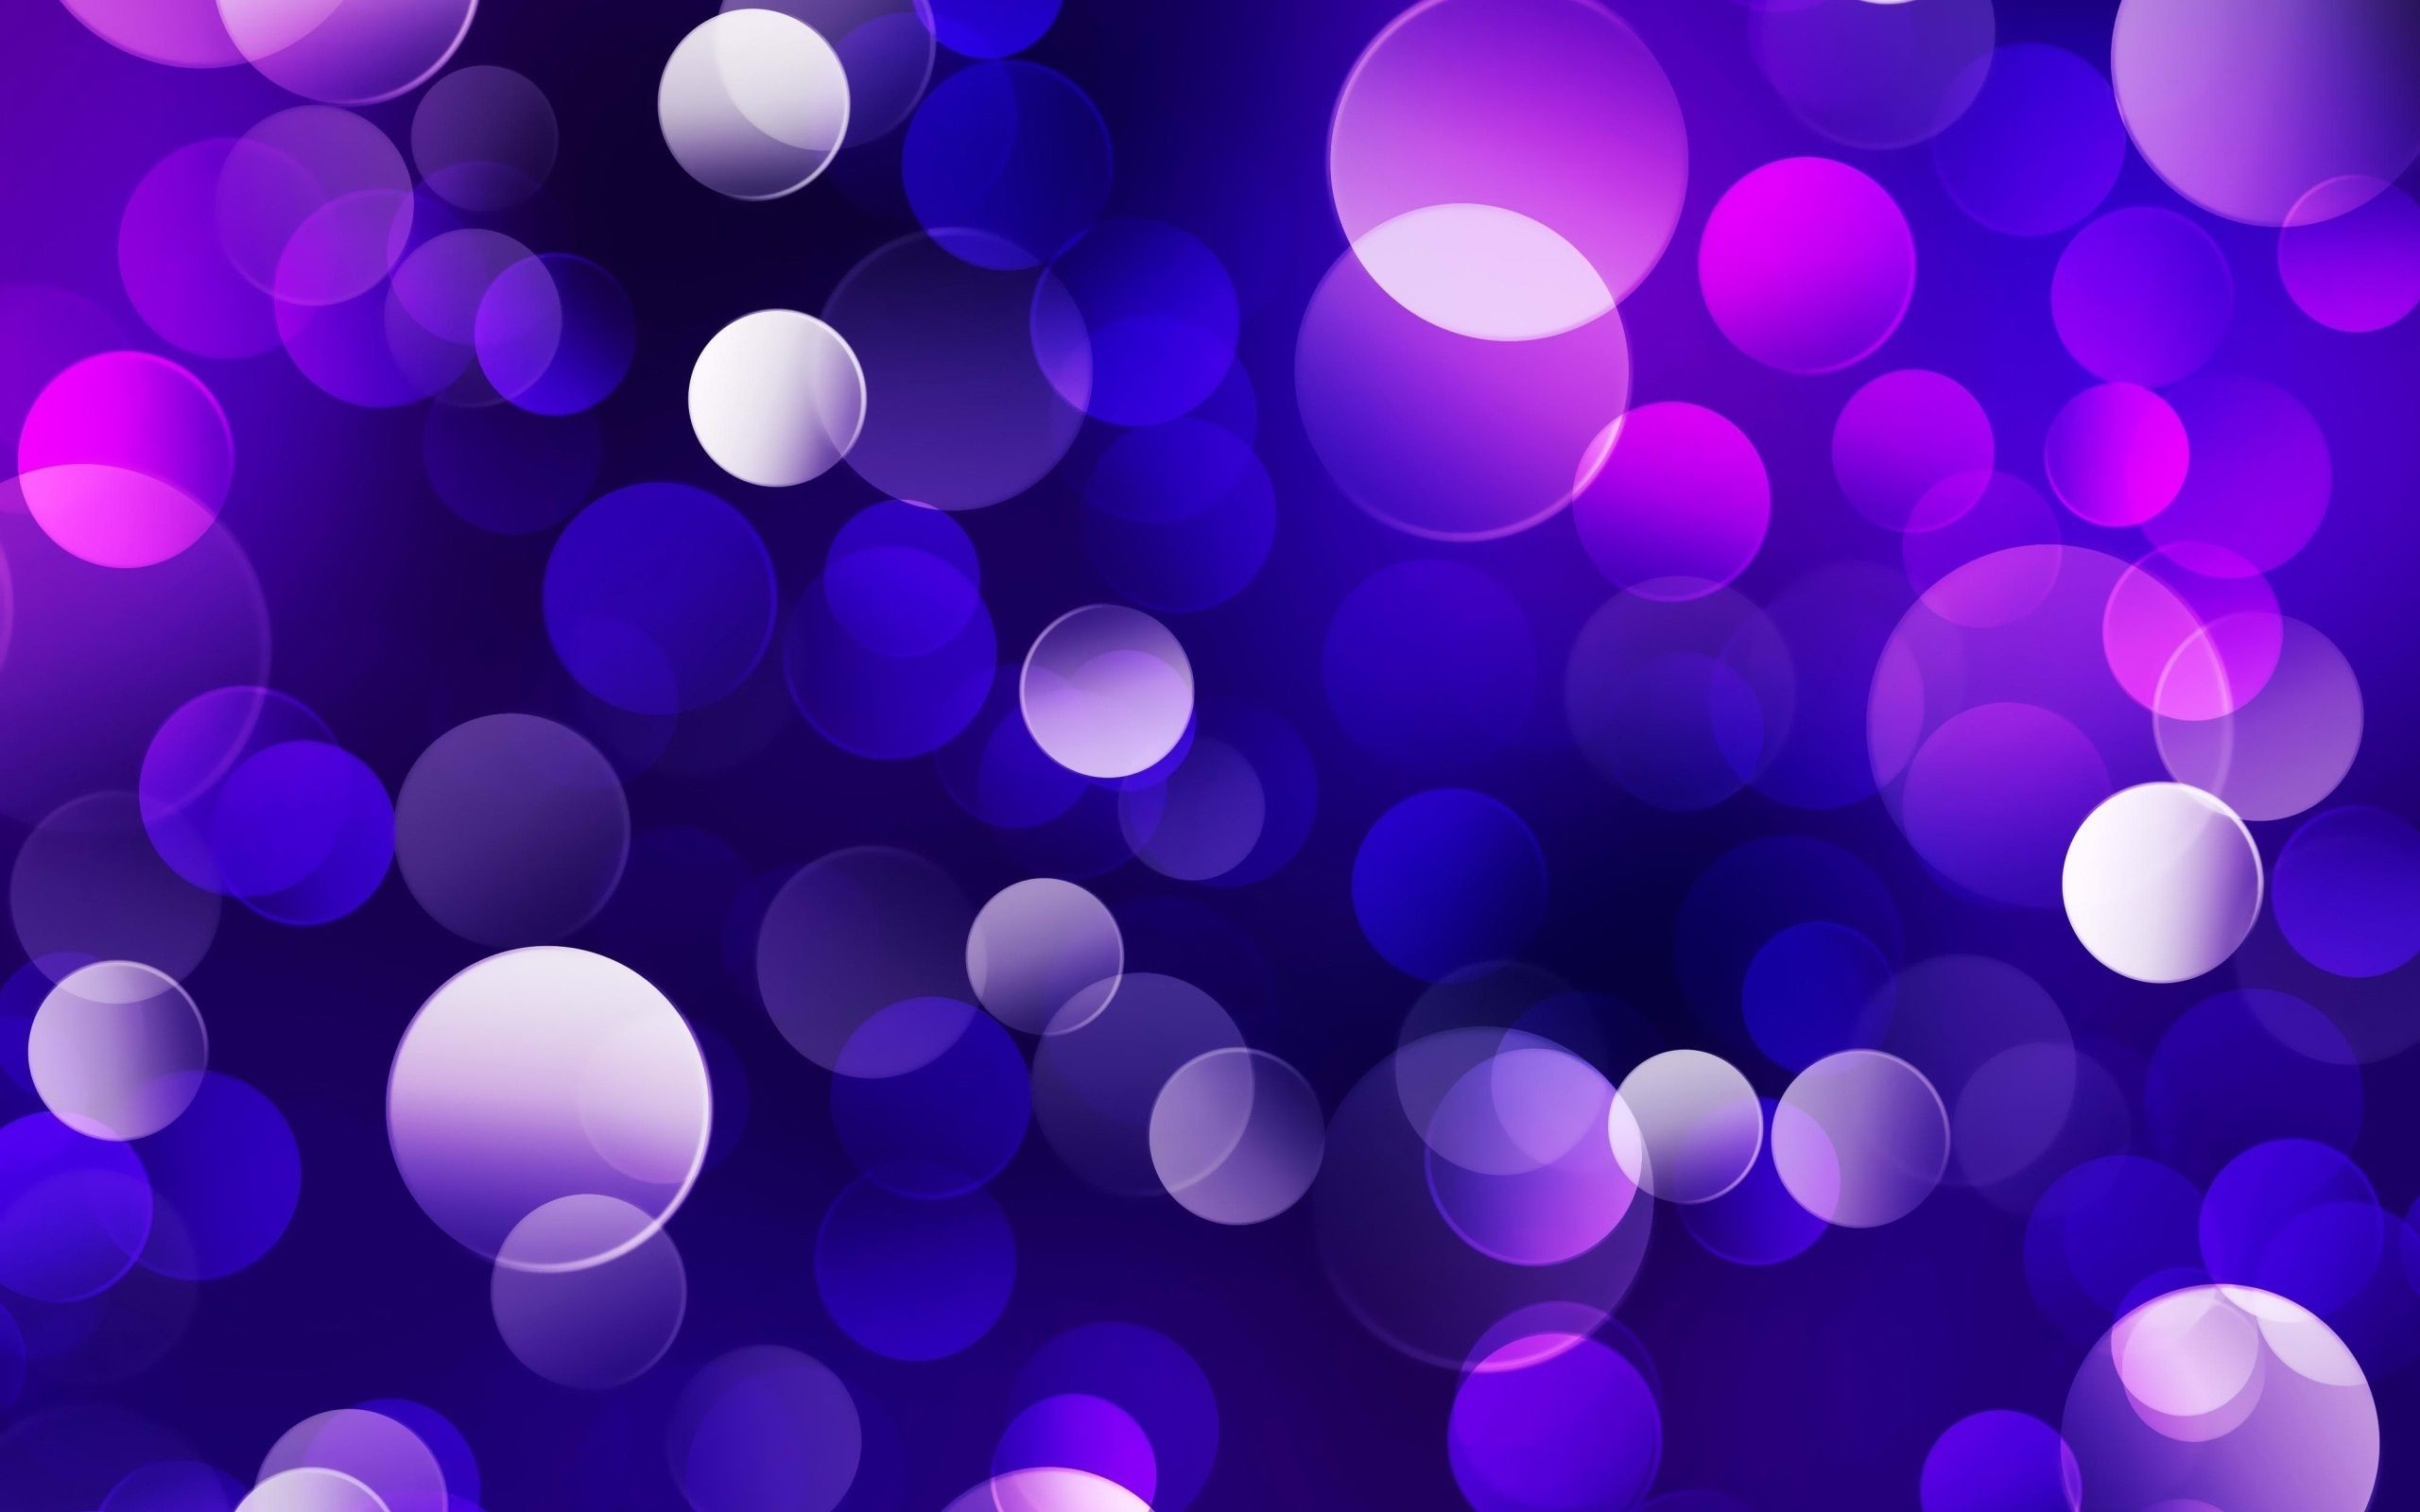 Purple abstract wallpaper widescreen desktop mobile iphone android hd  wallpaper and desktop.